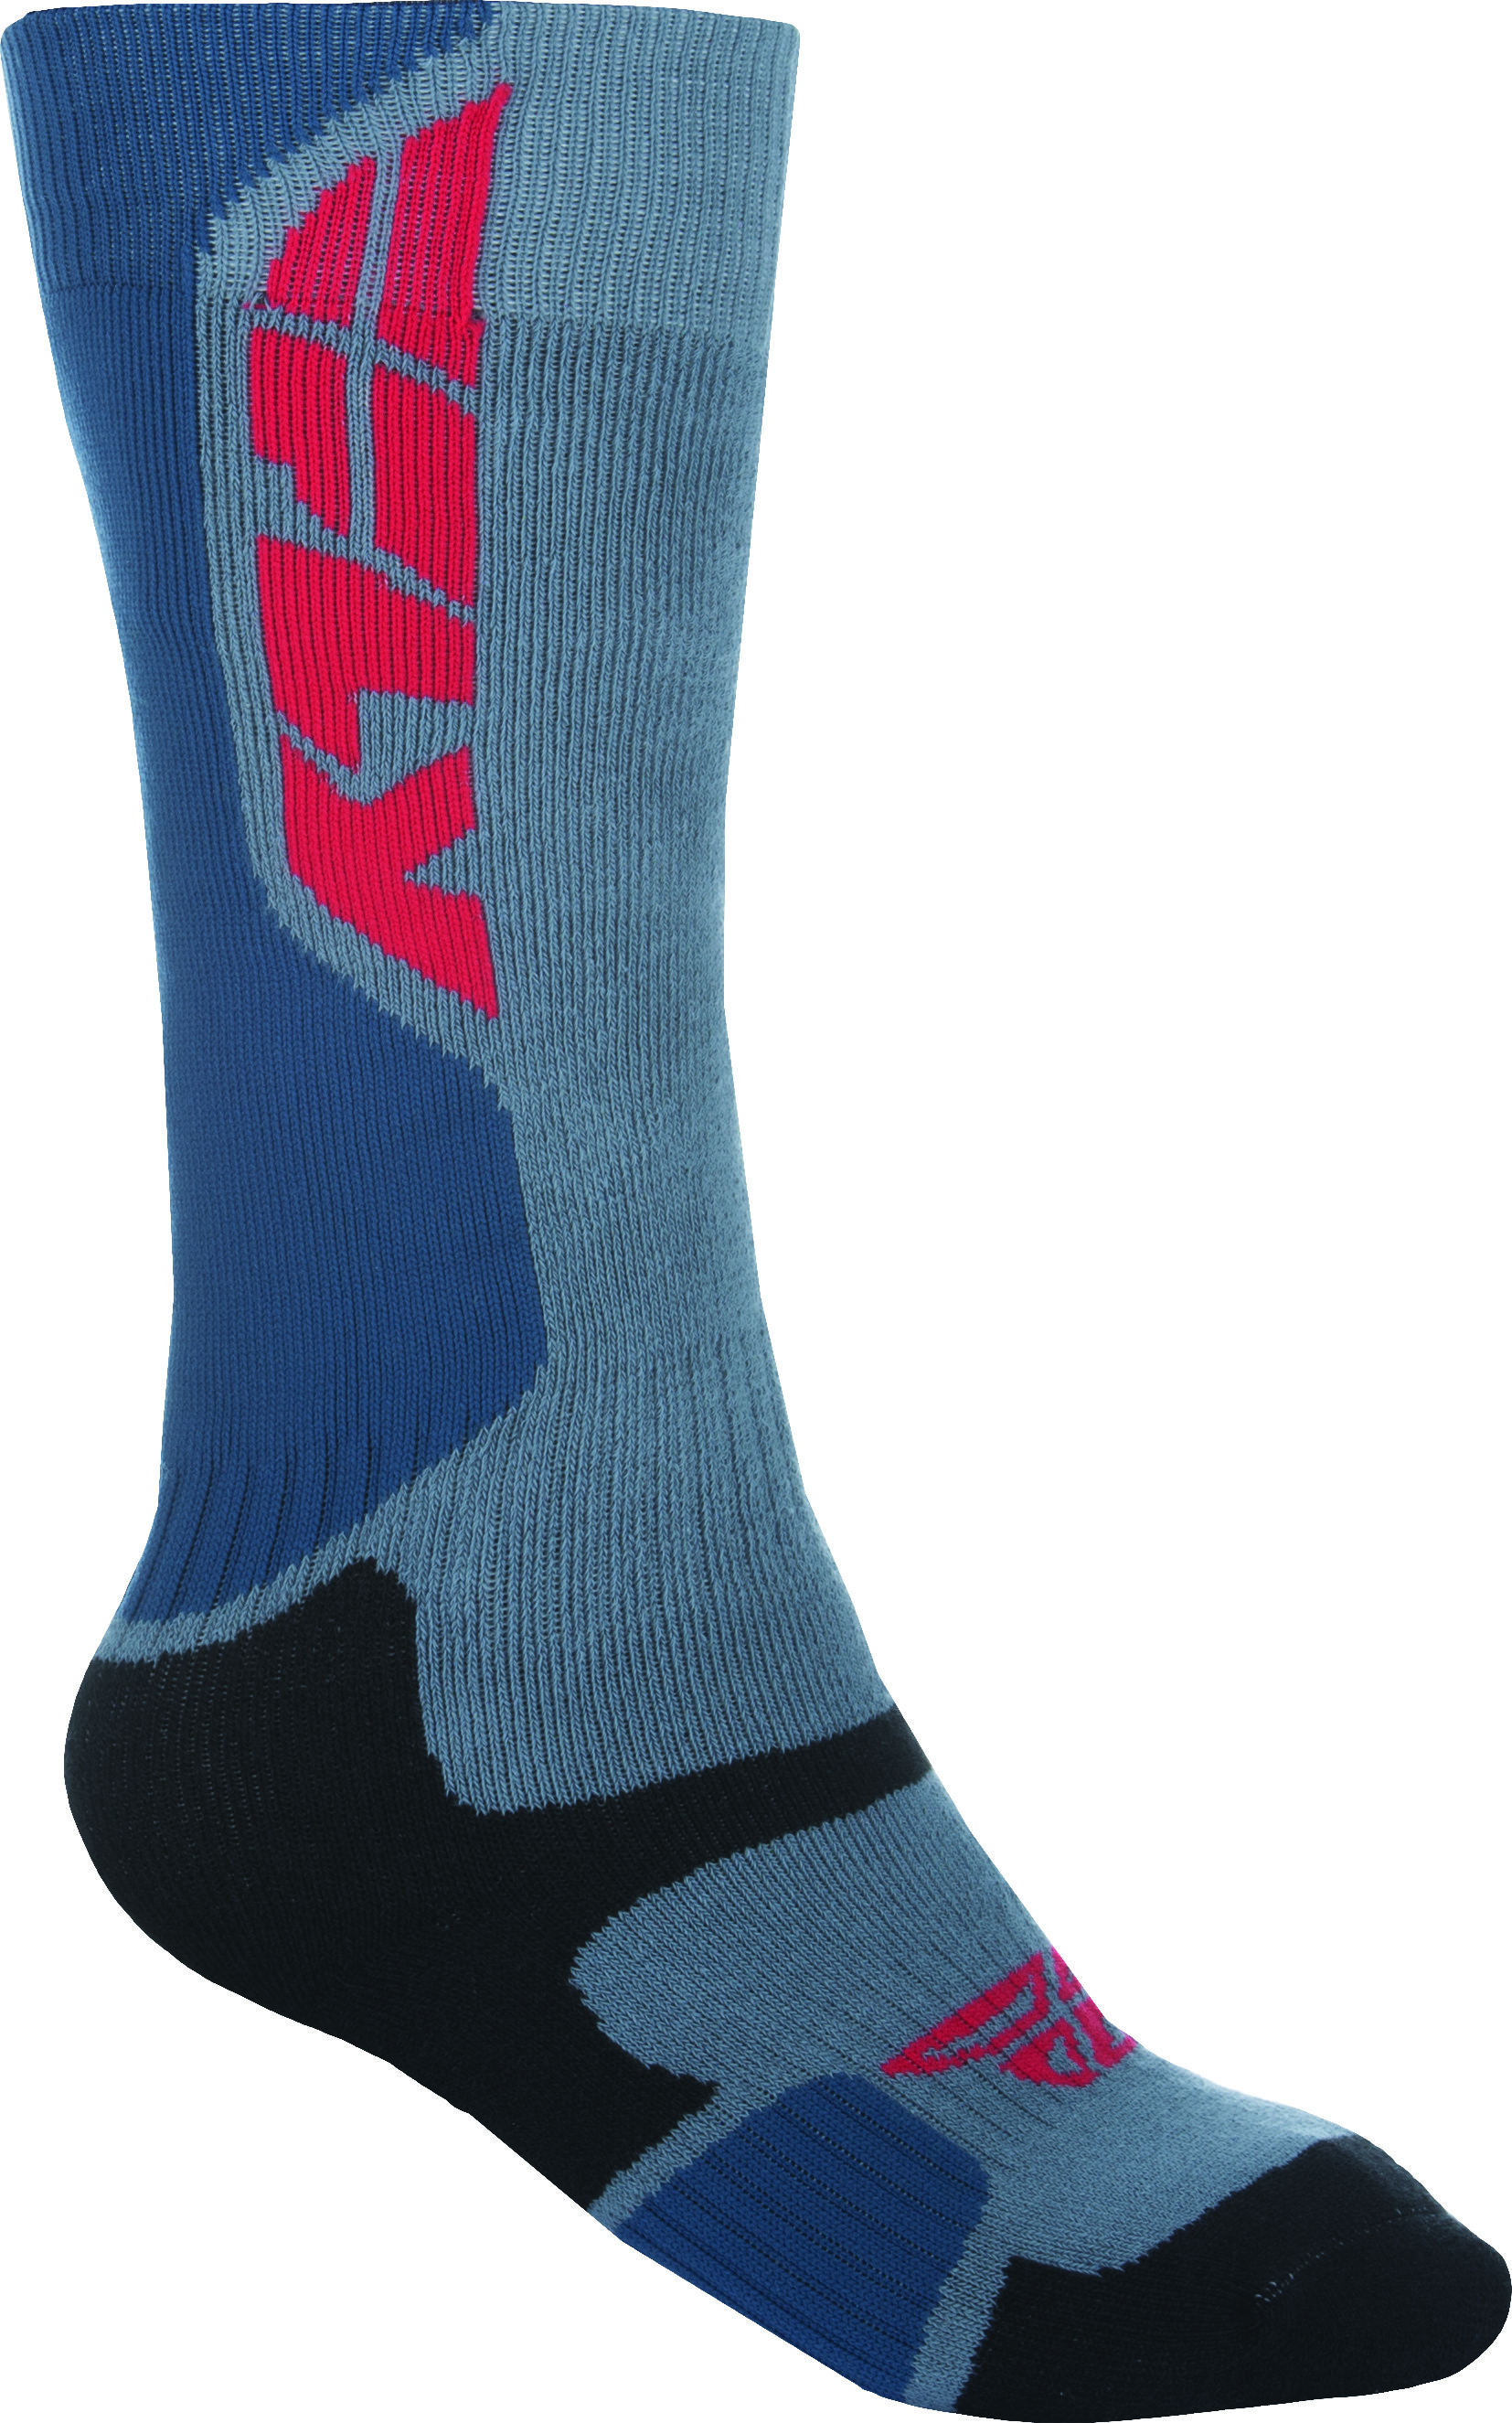 Mx Pro Sock Thick Grey/Black L/X